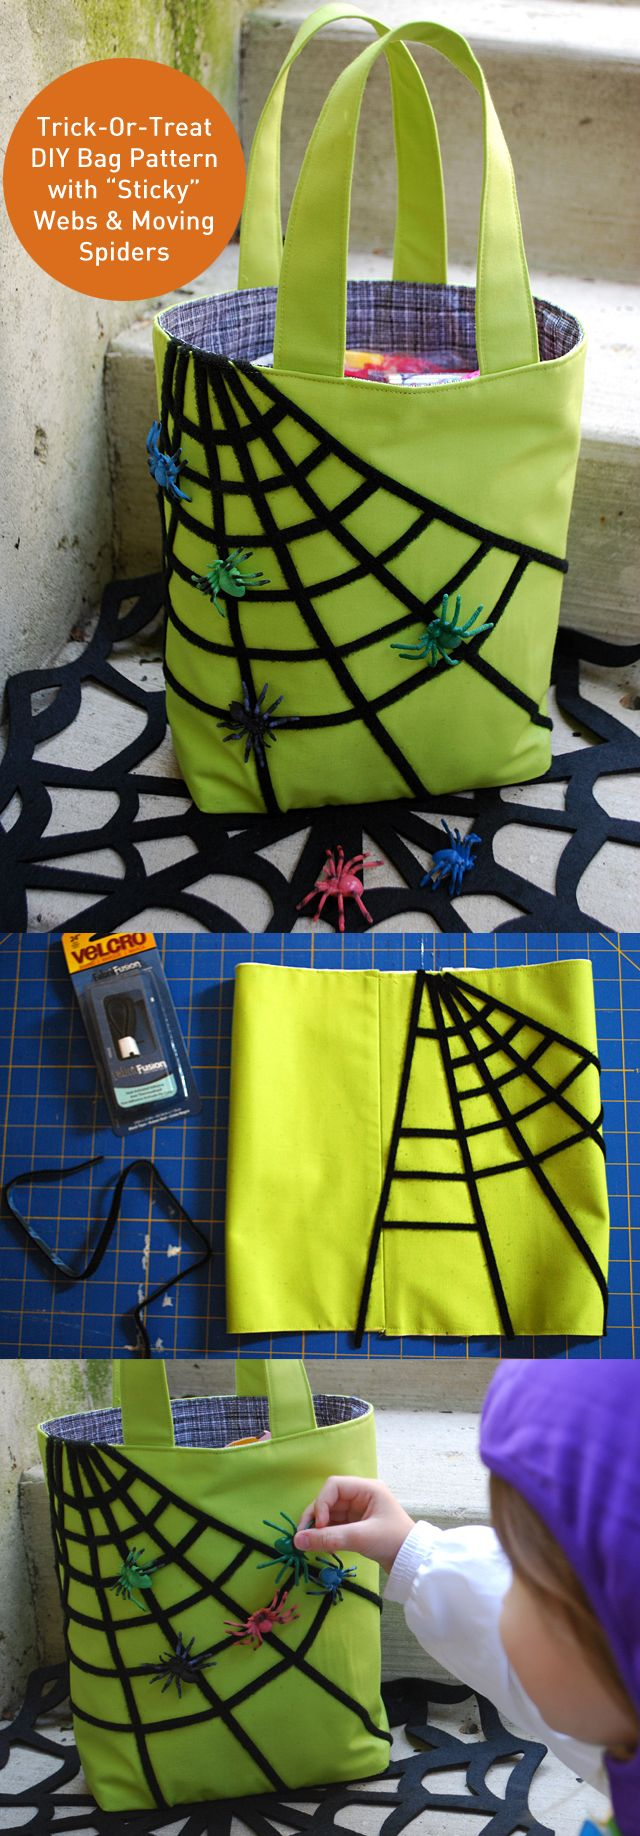 DIY Halloween Trick or Treat Bags with Sticky Spiderwebs